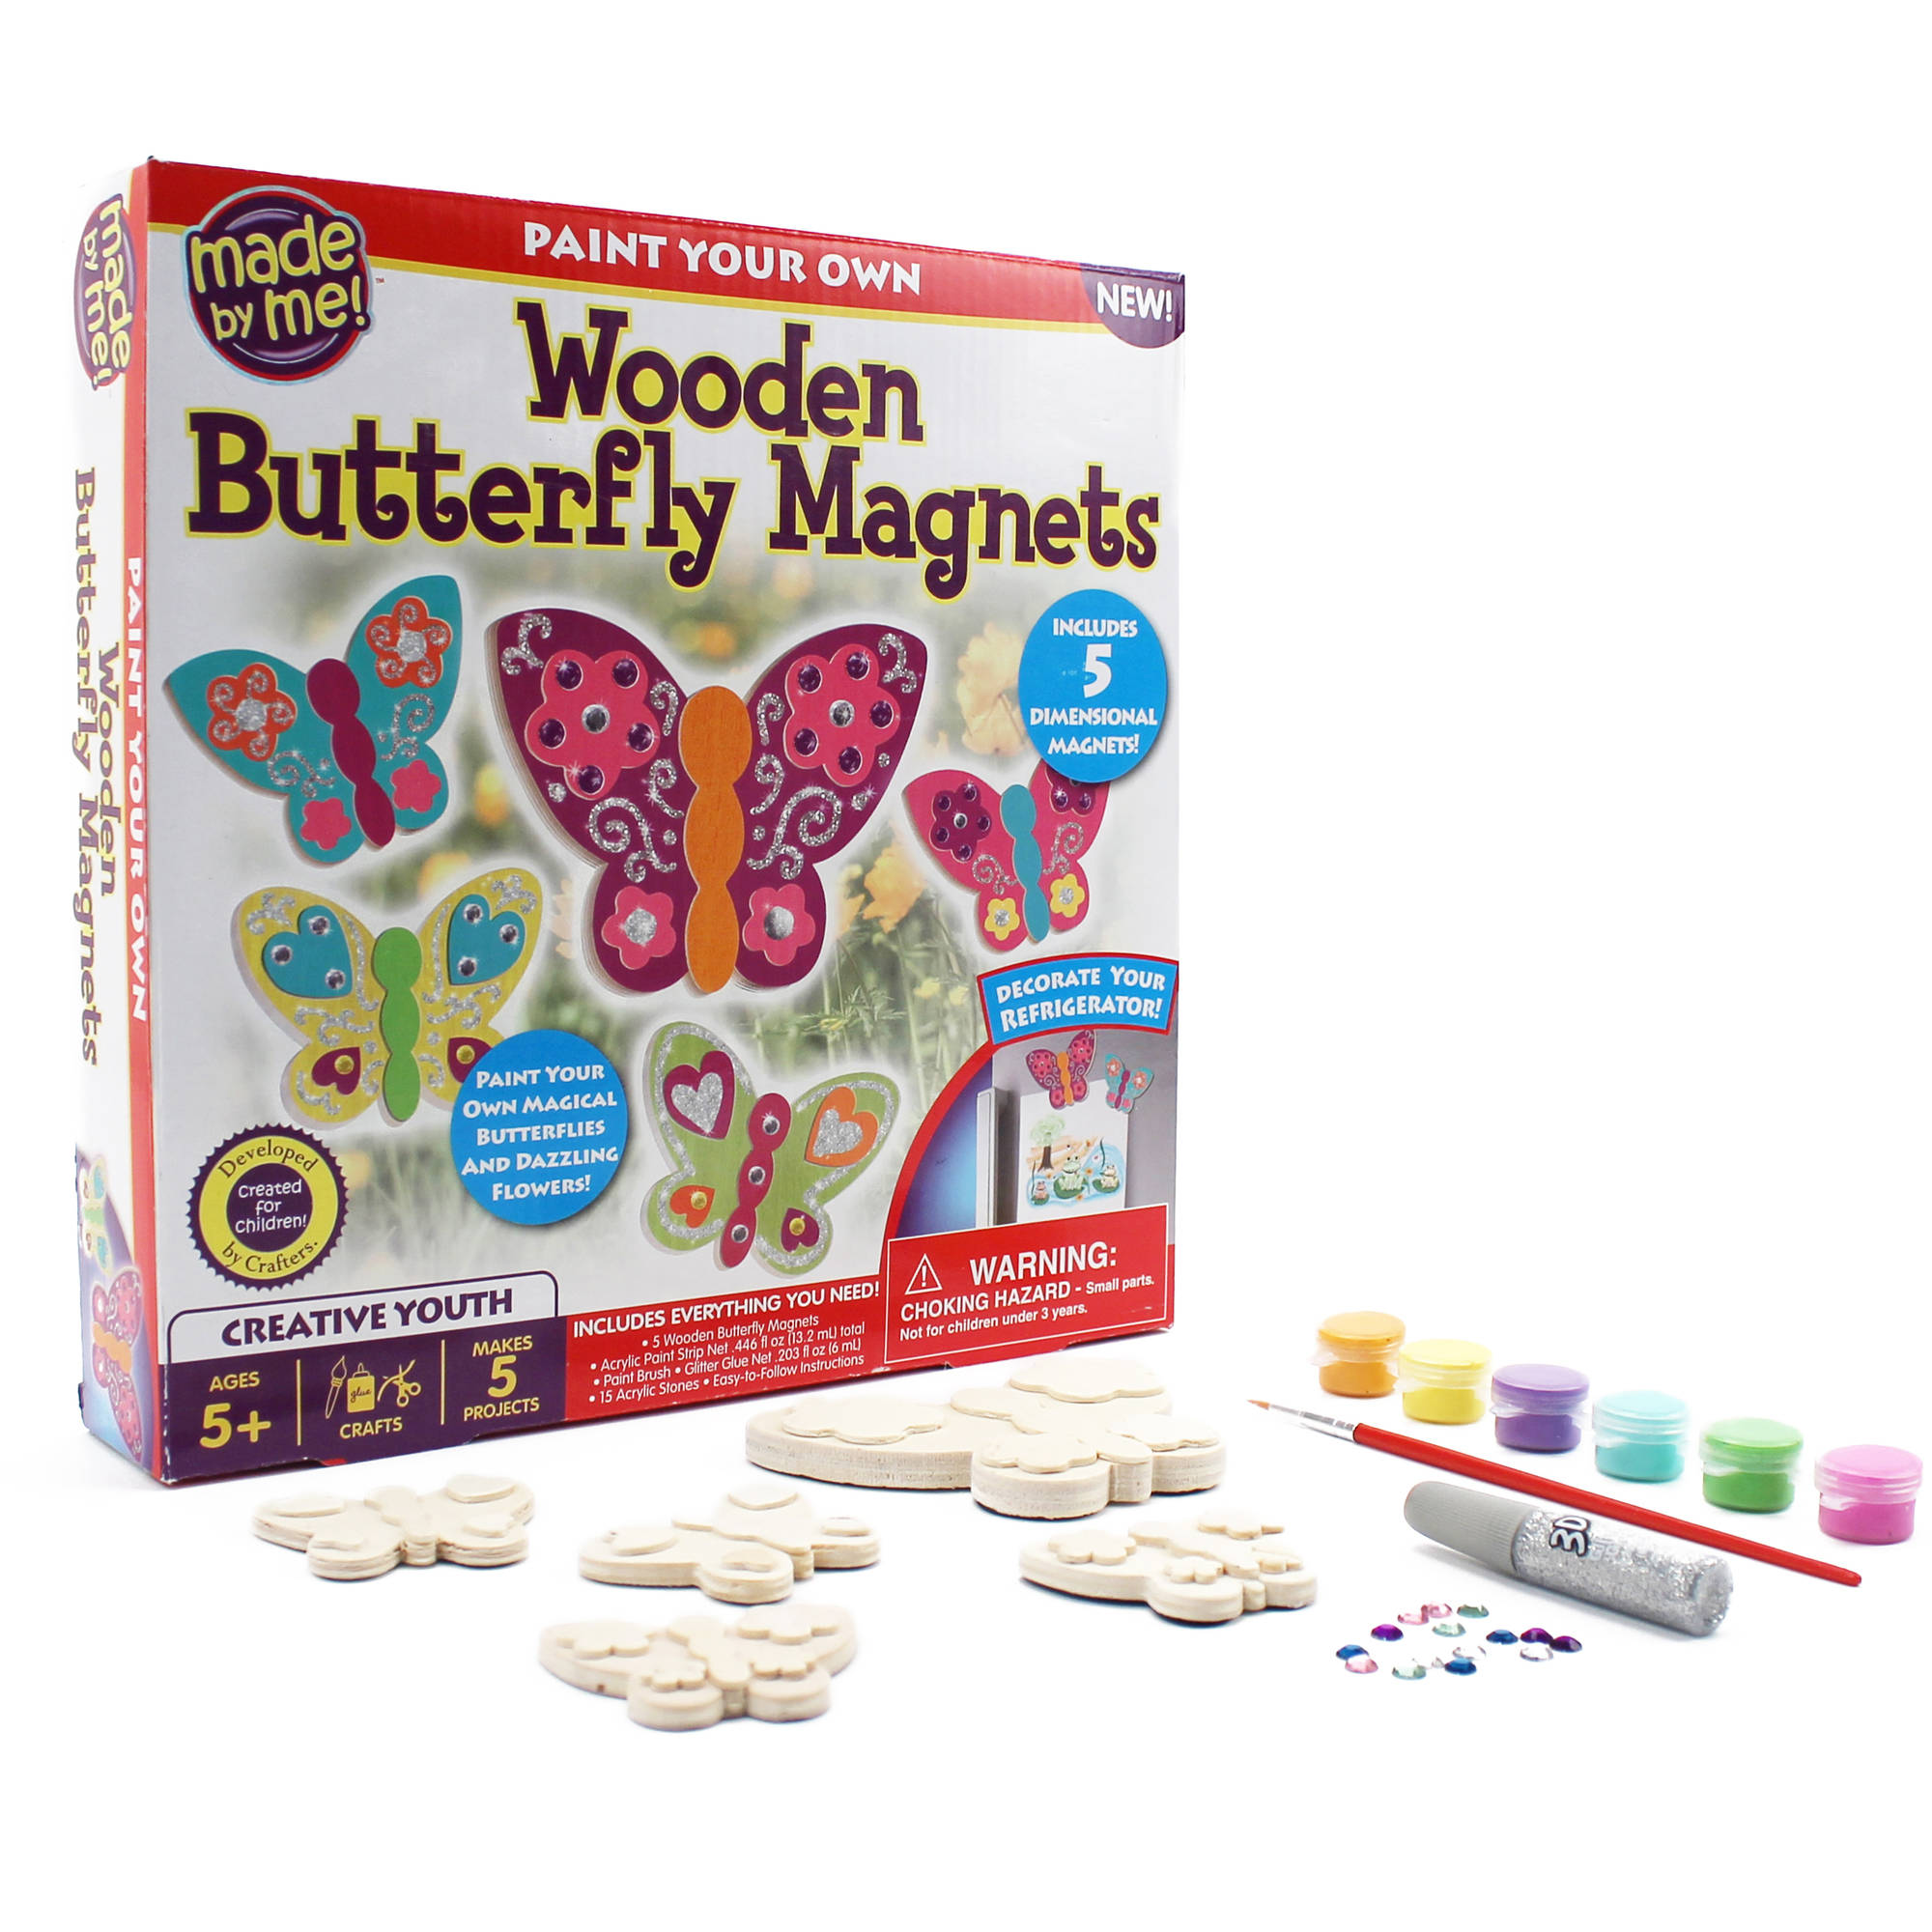 Made By Me Wooden Butterfly Magnets Kit by Horizon Group USA